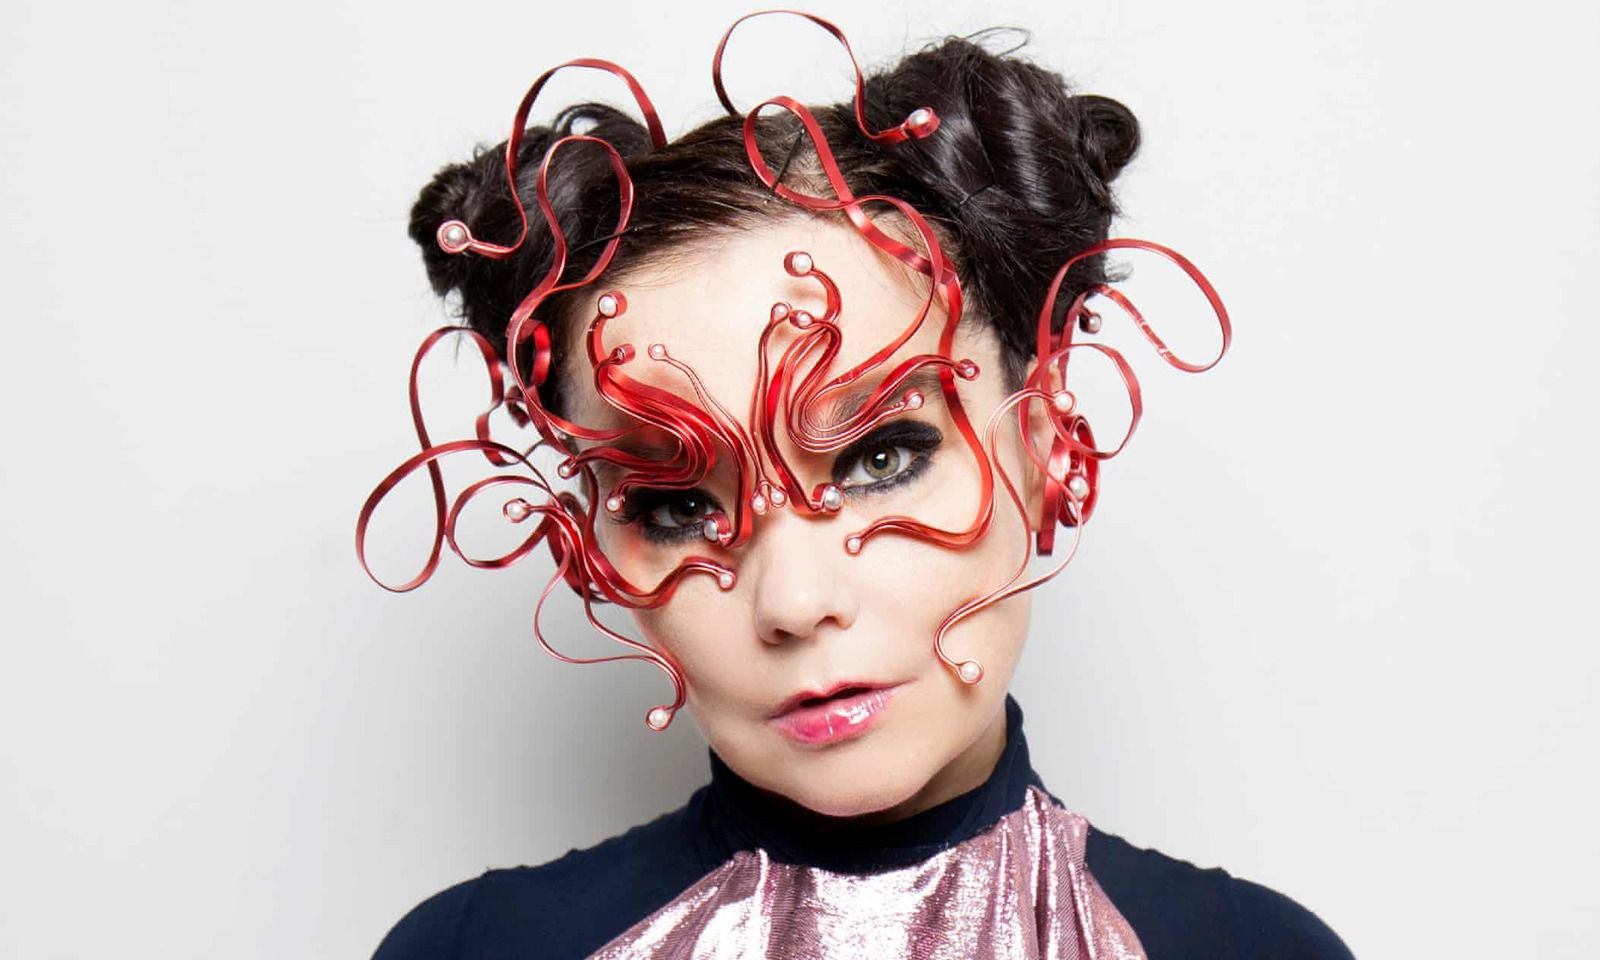 Best quotes by Björk